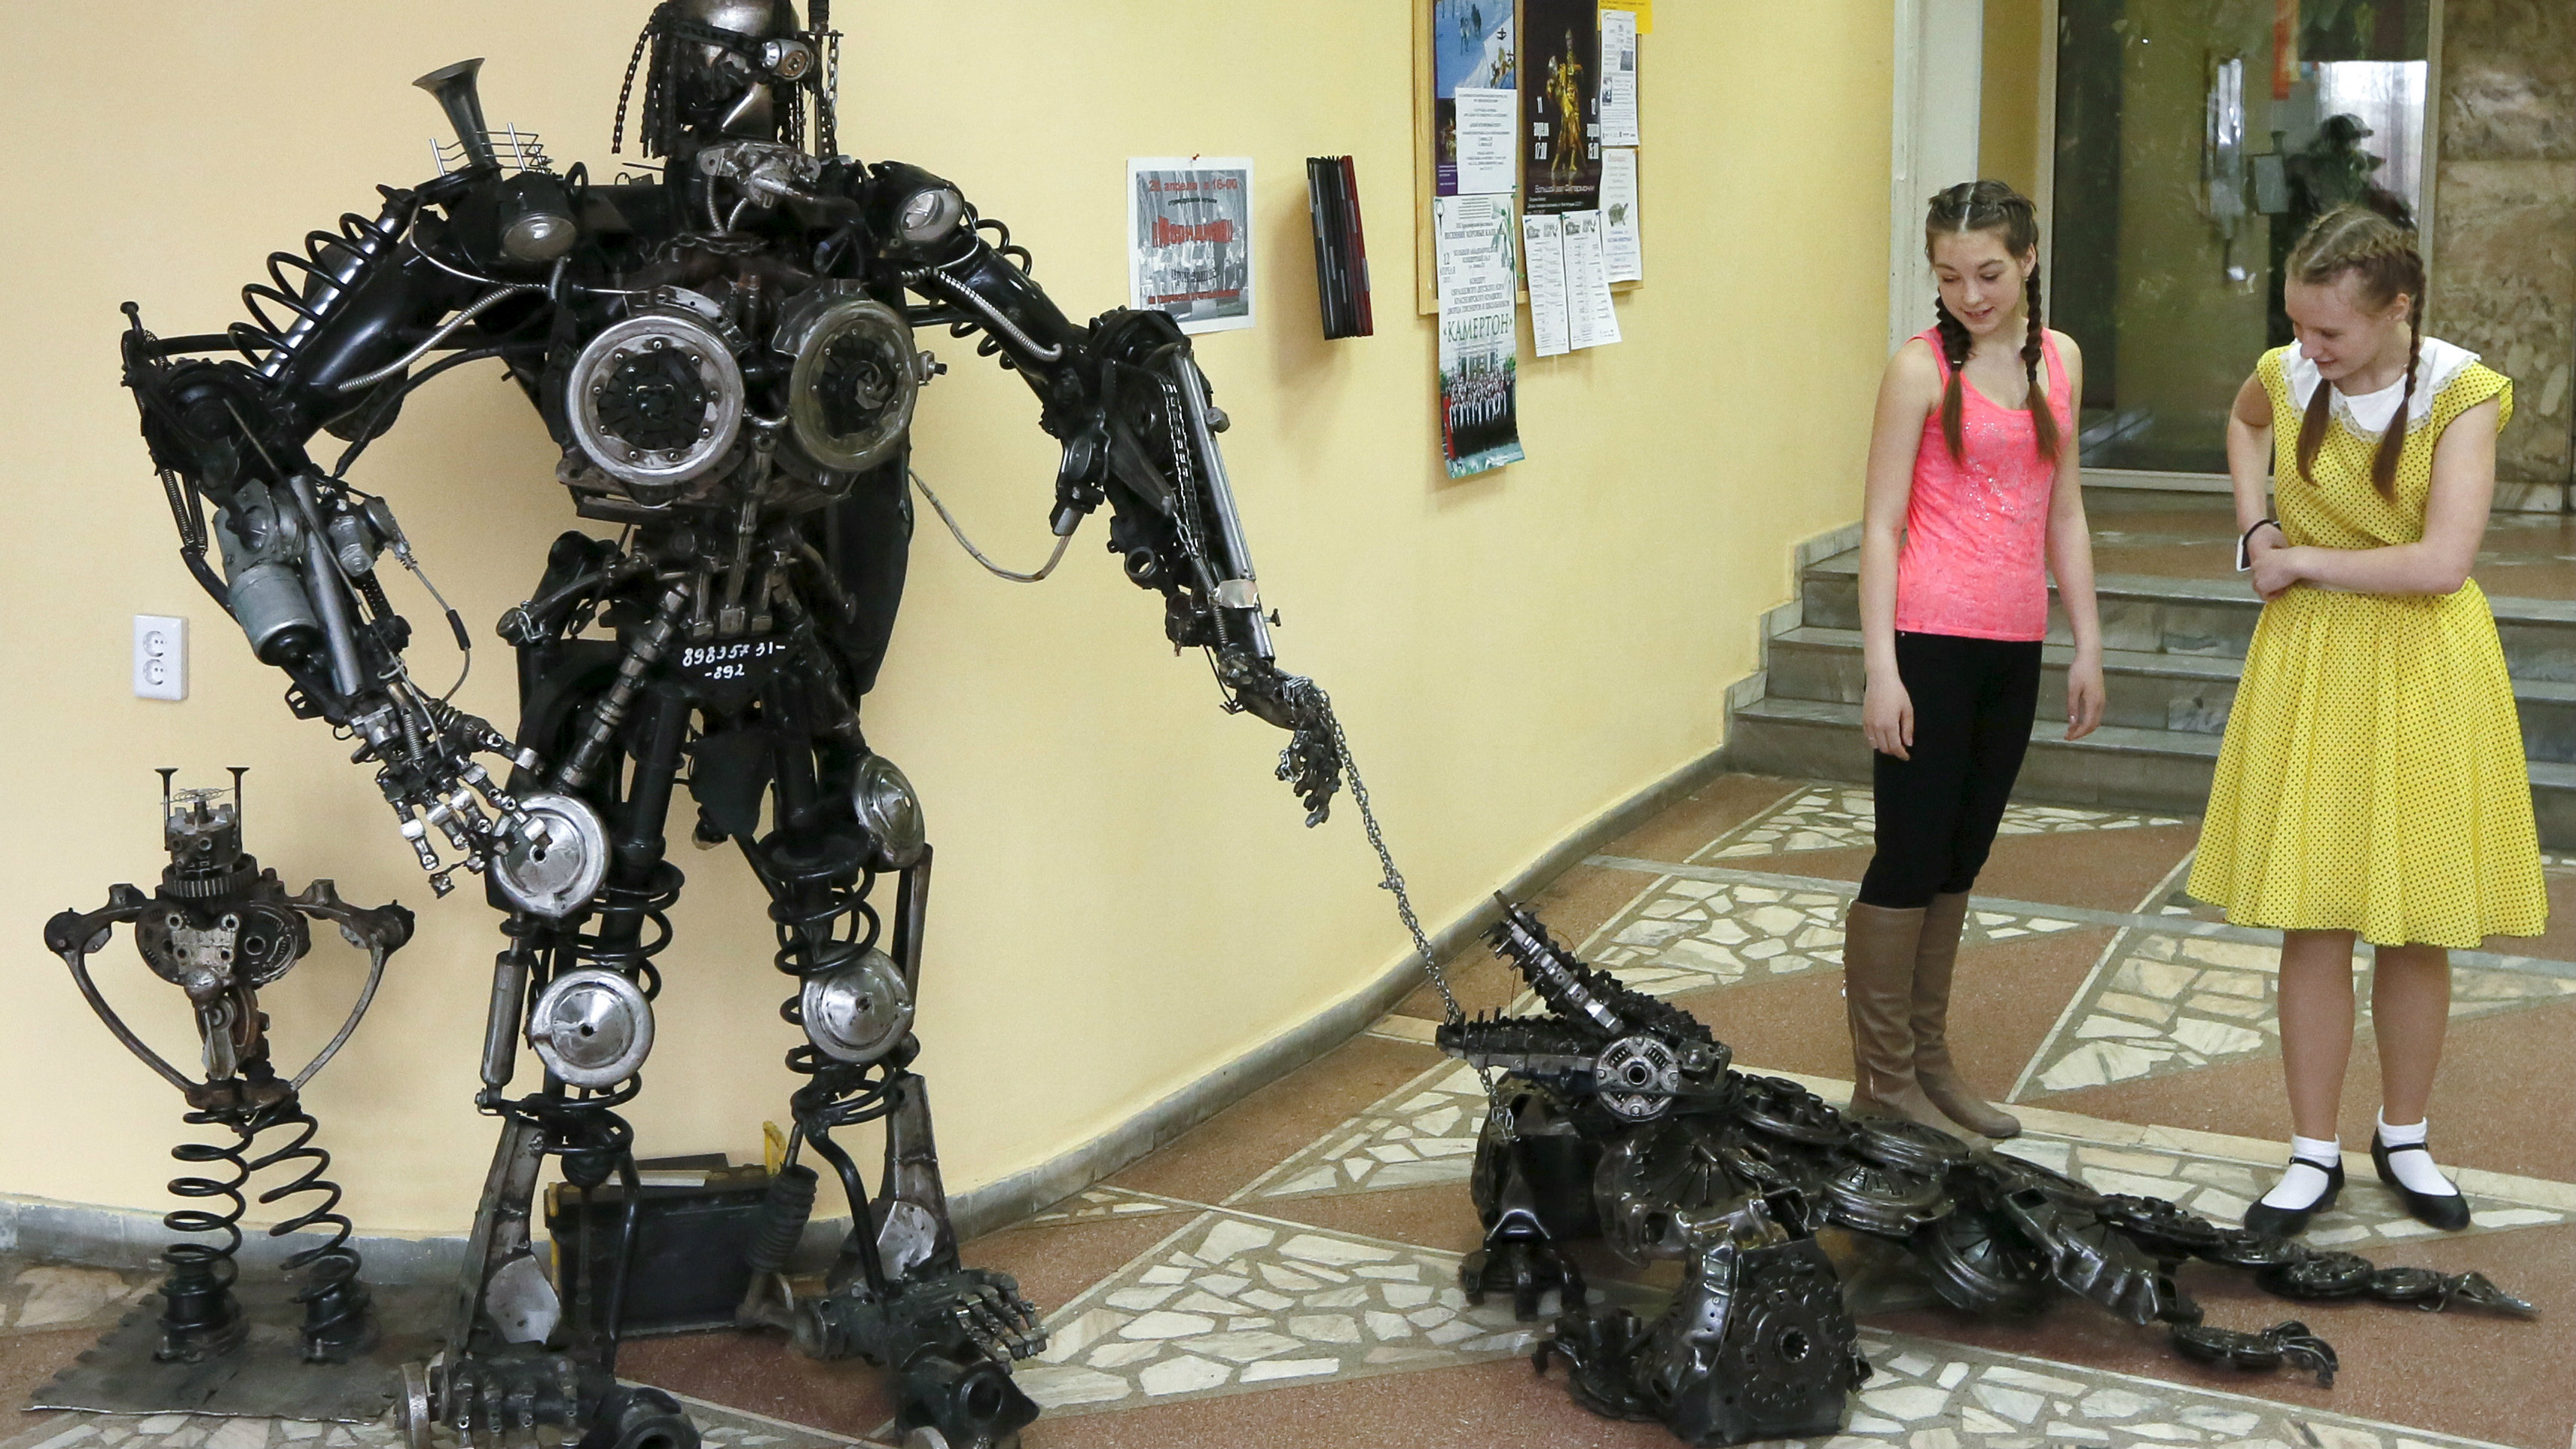 HEADLINE:Girls look at a robot and a crocodile made from used car components, created by mechanic and welder Sergei.